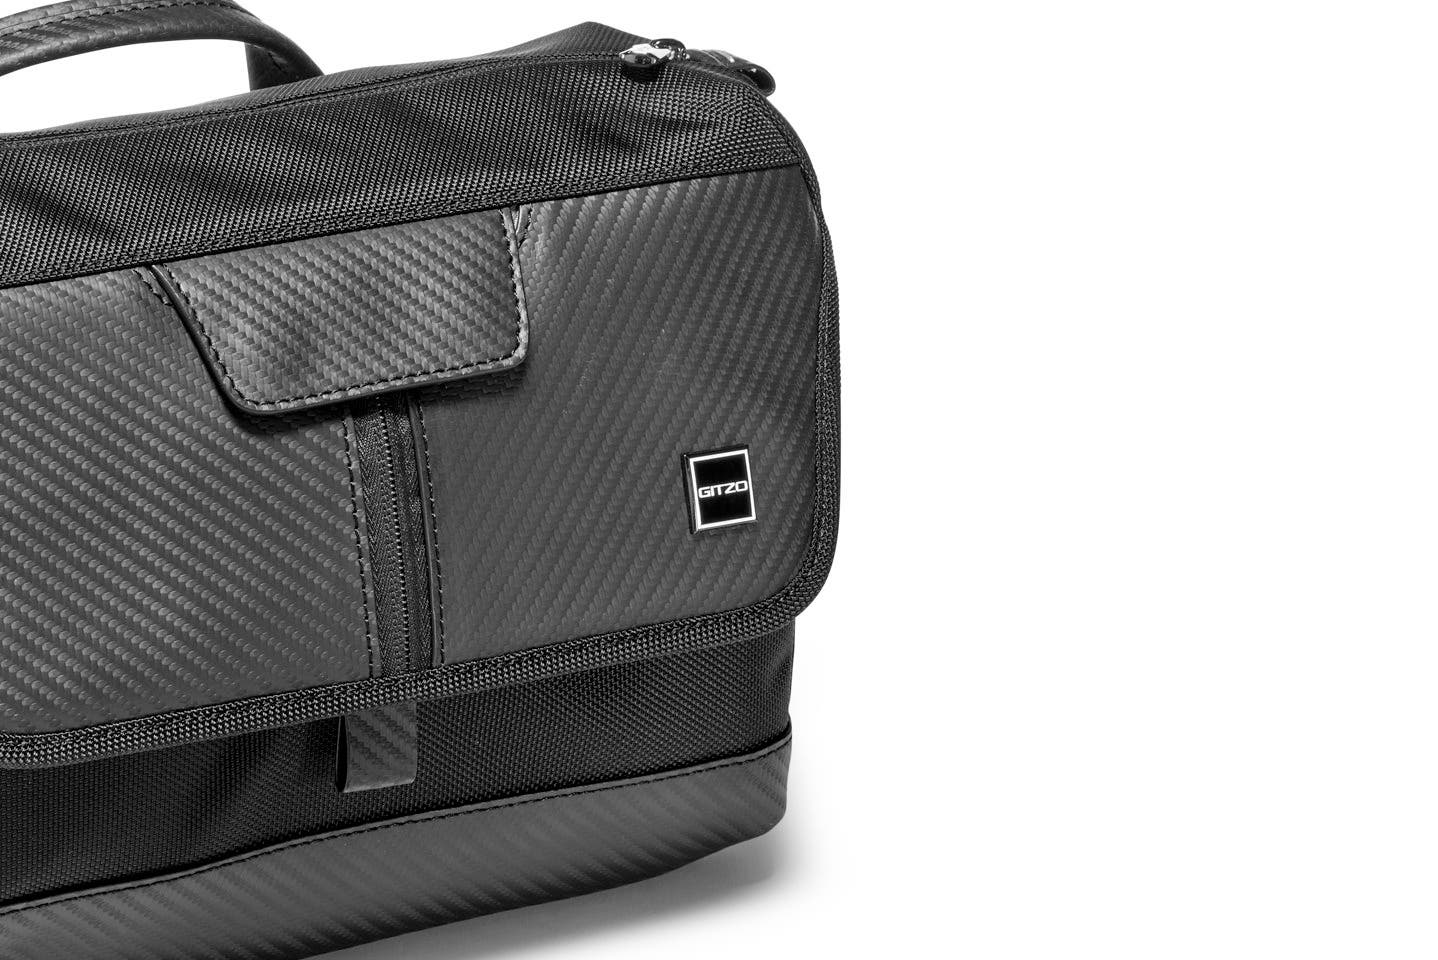 The New Gitzo Century Camera Bag Collection is Designed to Look like Carbon Fiber